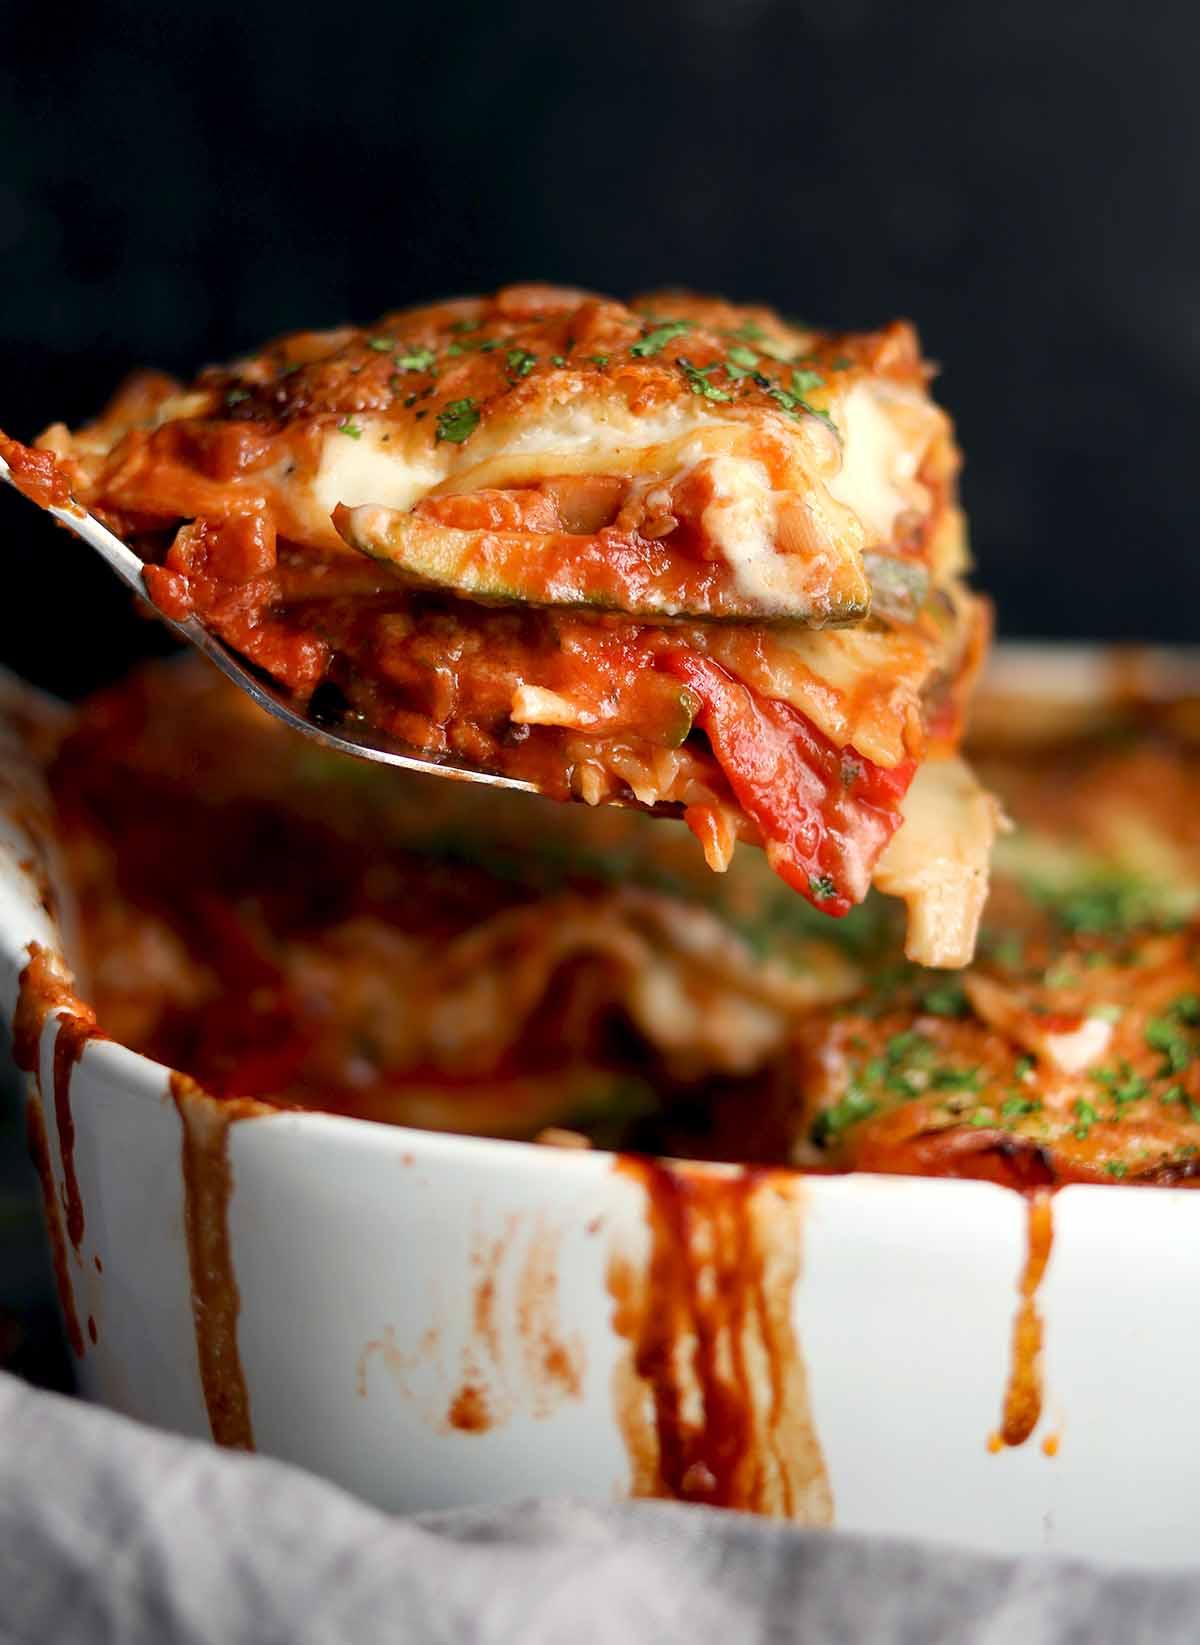 Vegetarian Lasagne with basil garnish